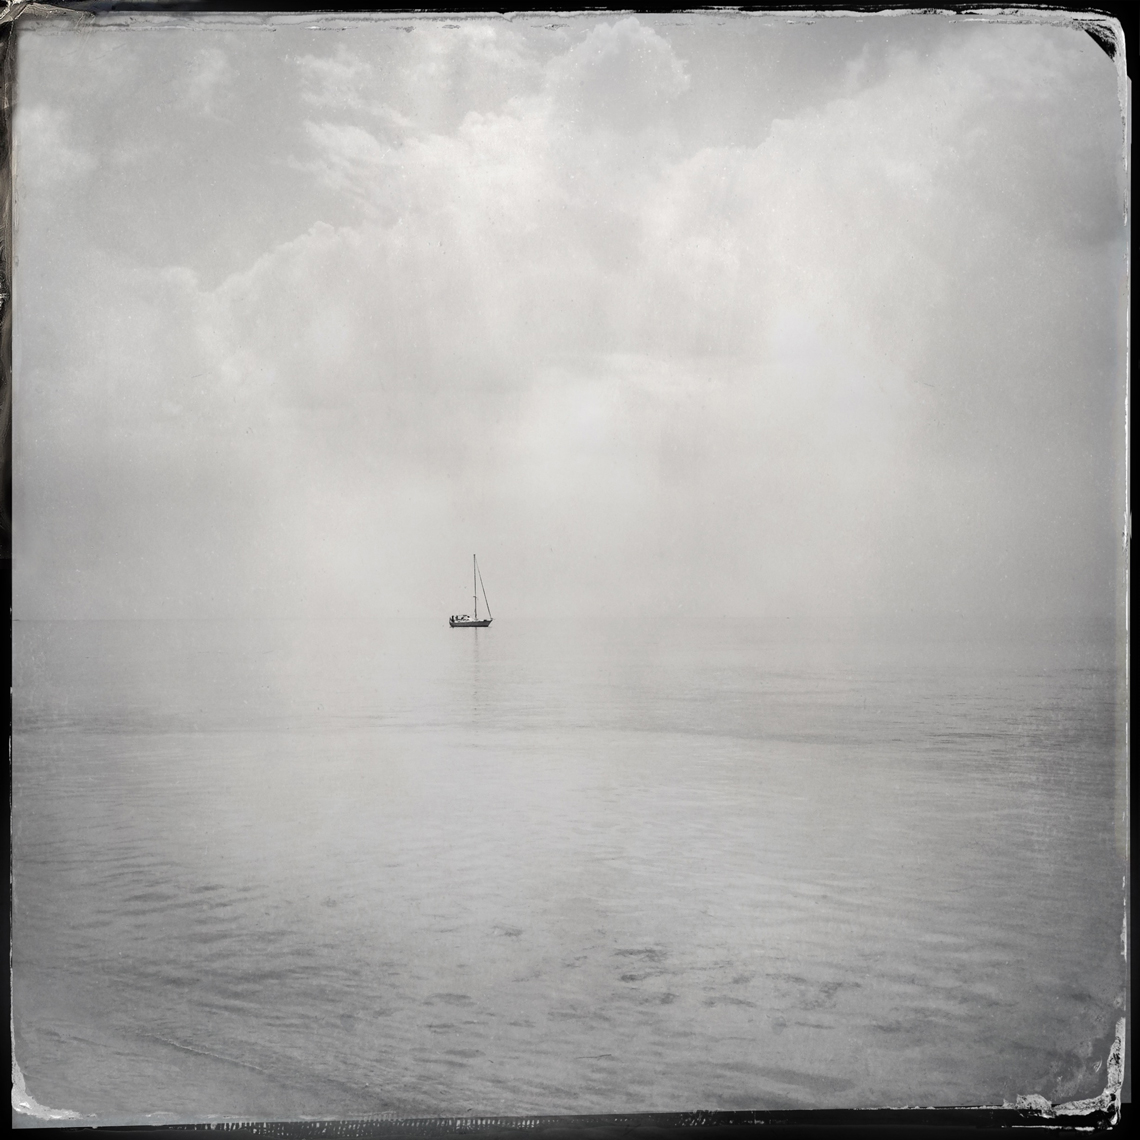 Jon Wyatt Photography - single boat at sea. Hipstamatic